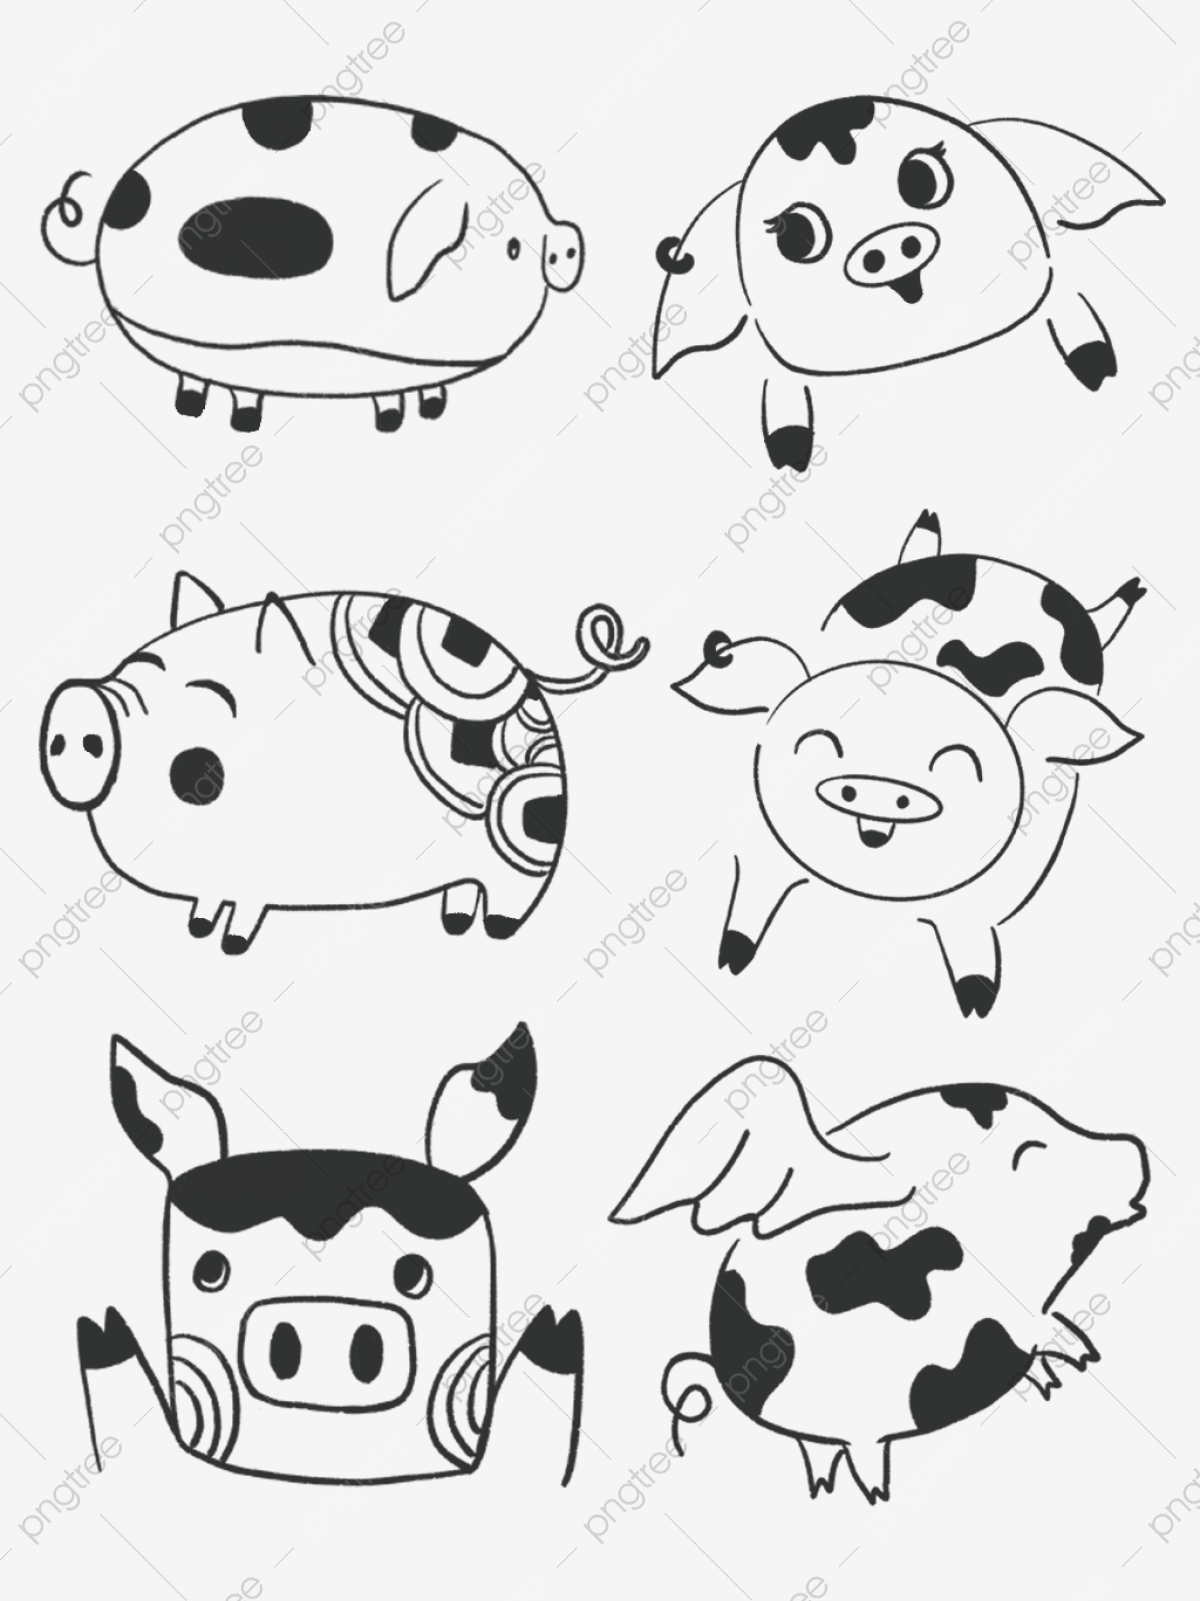 Pig Year Simple Cute Black And White Hand Painted Material Element Year Of The Pig Cute Pig Paper Cut Pig Png Transparent Clipart Image And Psd File For Free Download